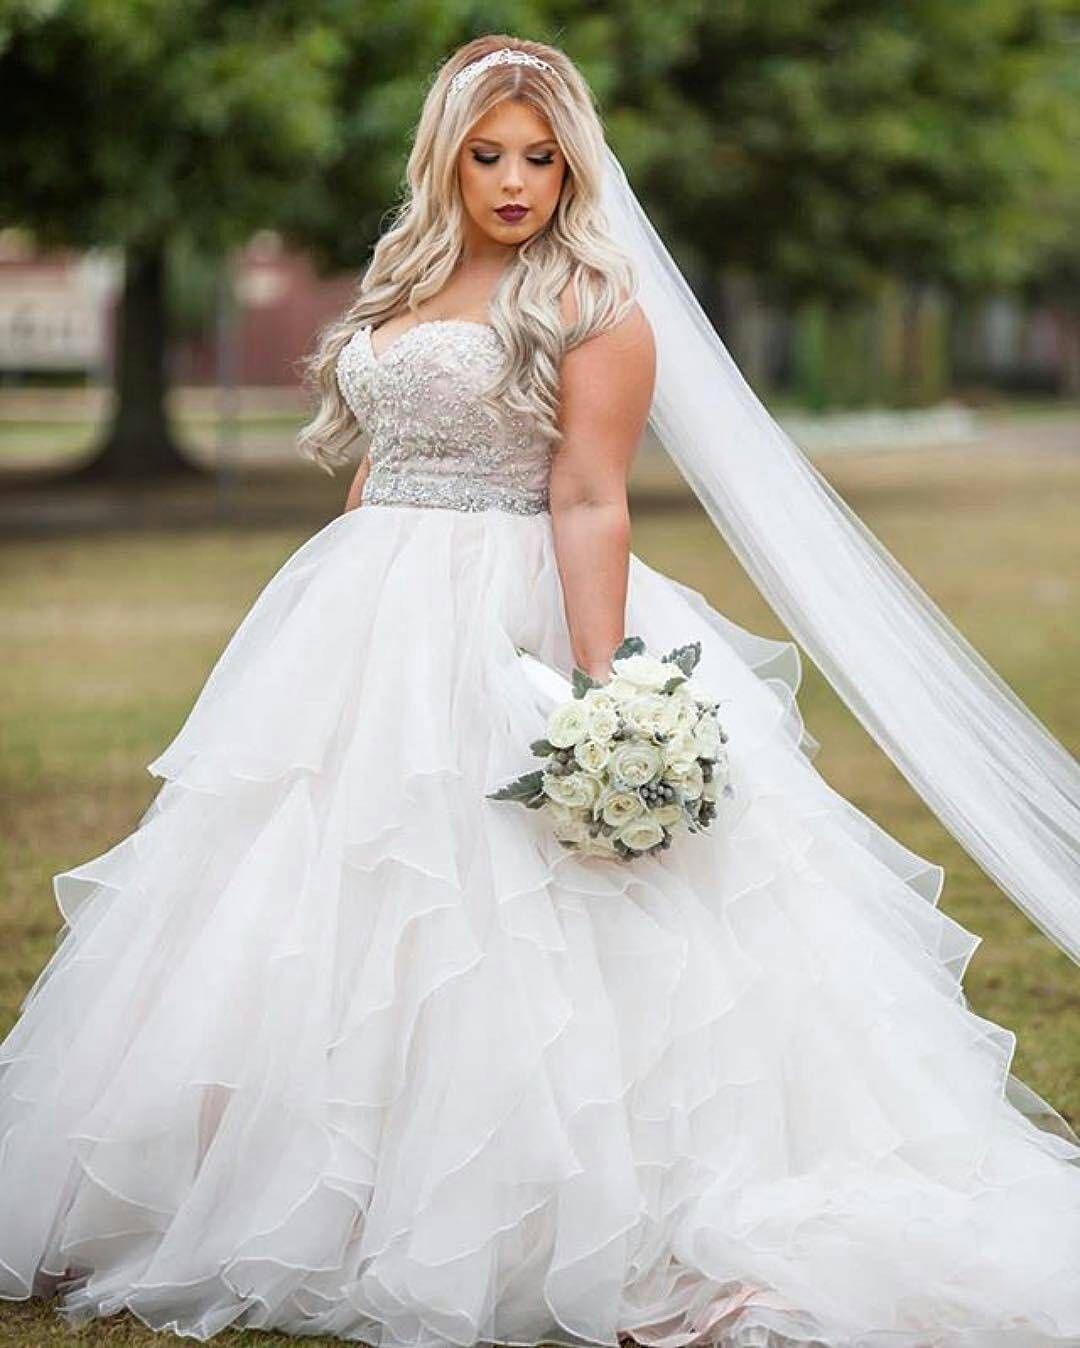 fae03a68e89 We are  USA dress  designers who specialize in affordable custom plus size   weddingdresses.